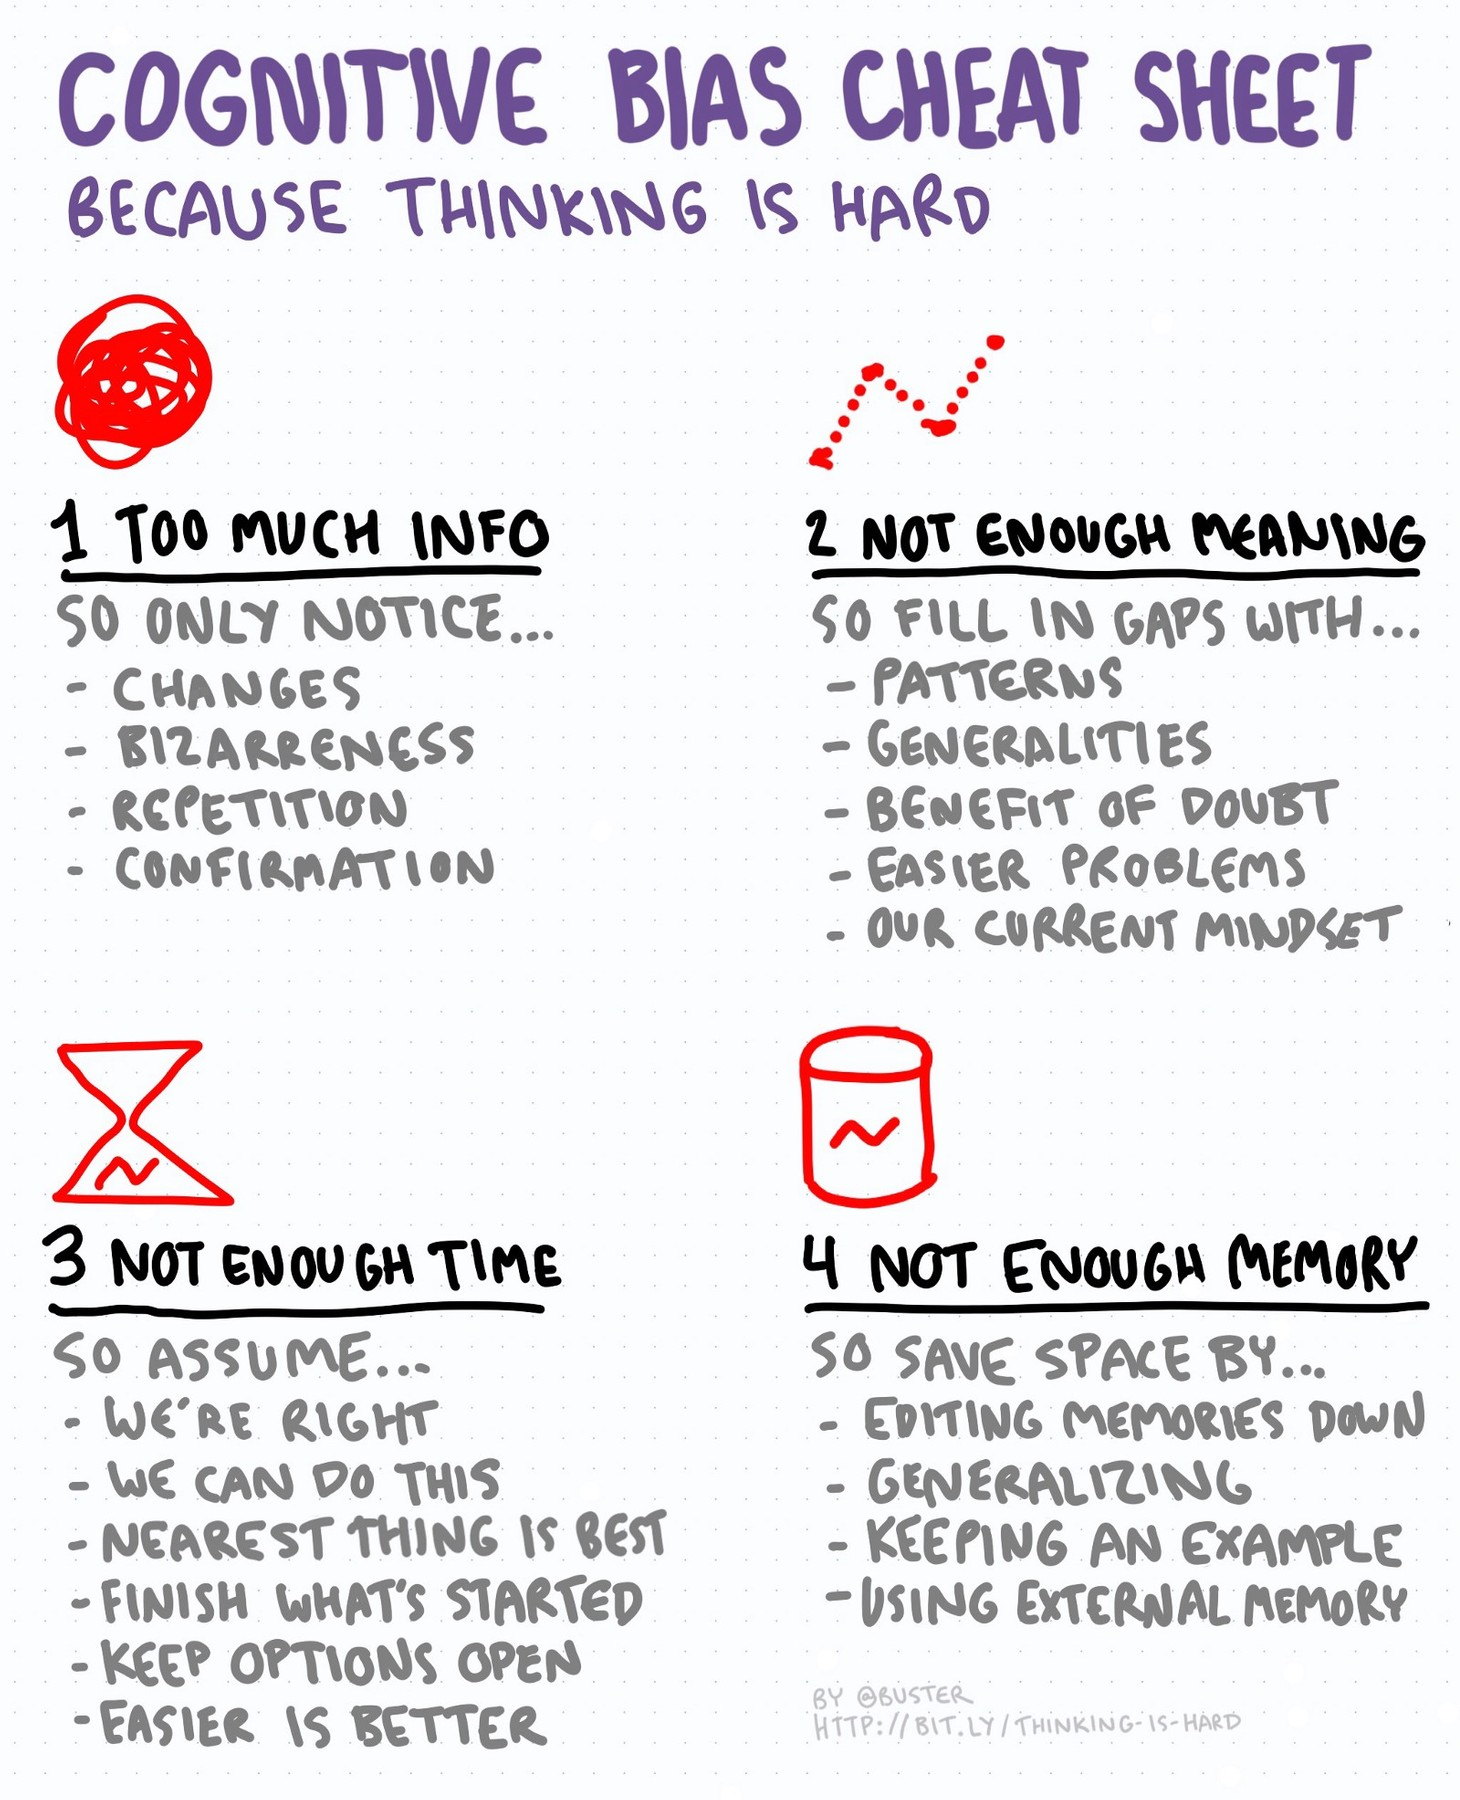 Cognitive bias cheat sheet by Buster Benson